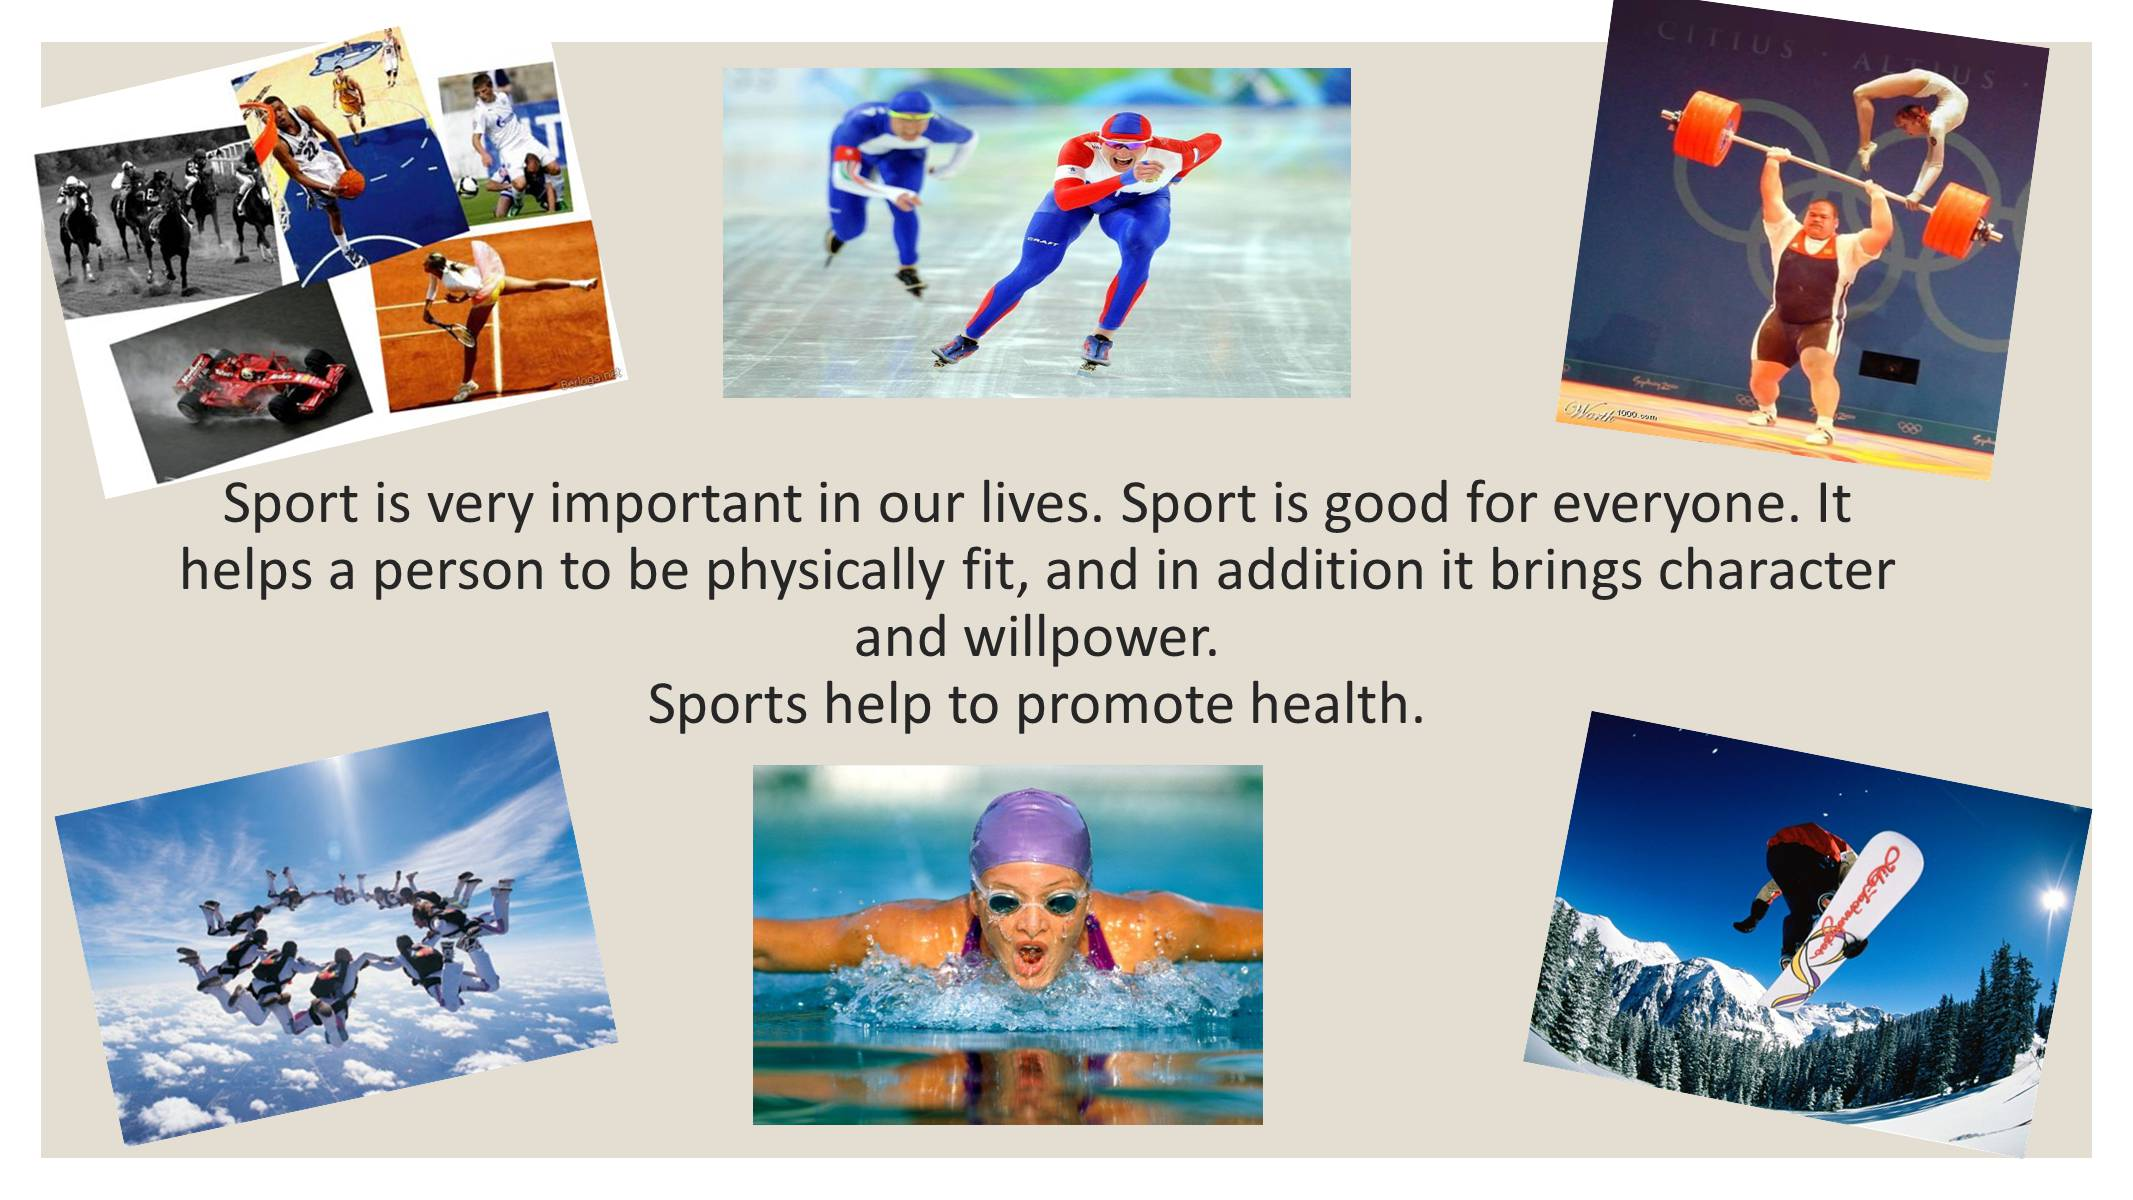 sports and life essay Free sample essay about sports and health in our life example extended essay writing on sports and health topic essay on sports and health azseo.